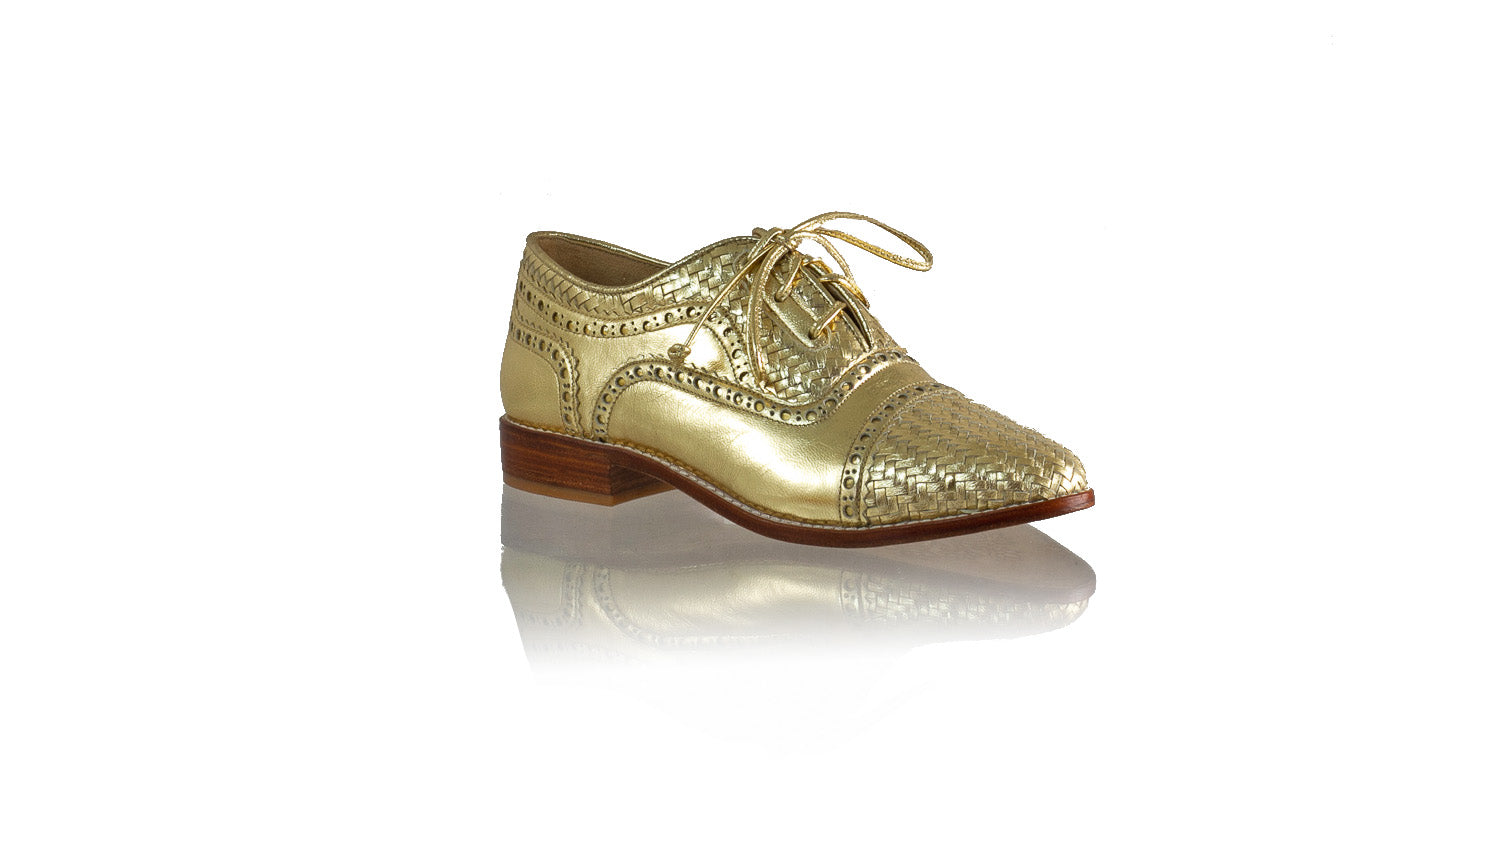 Leather-shoes-Nicola 25mm Flat - Gold-flats laceup-NILUH DJELANTIK-NILUH DJELANTIK